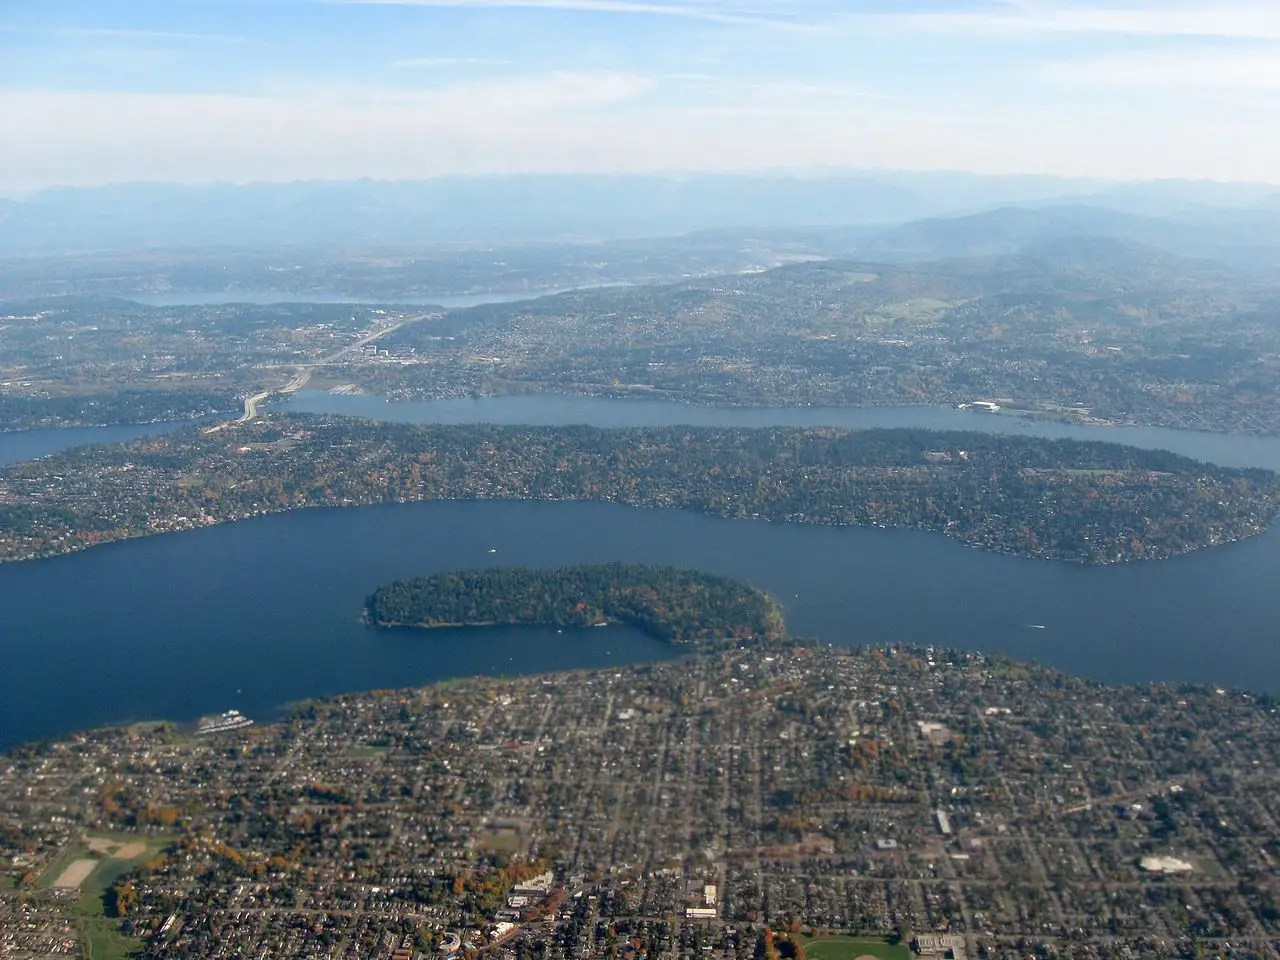 12. Mercer Island, Washington